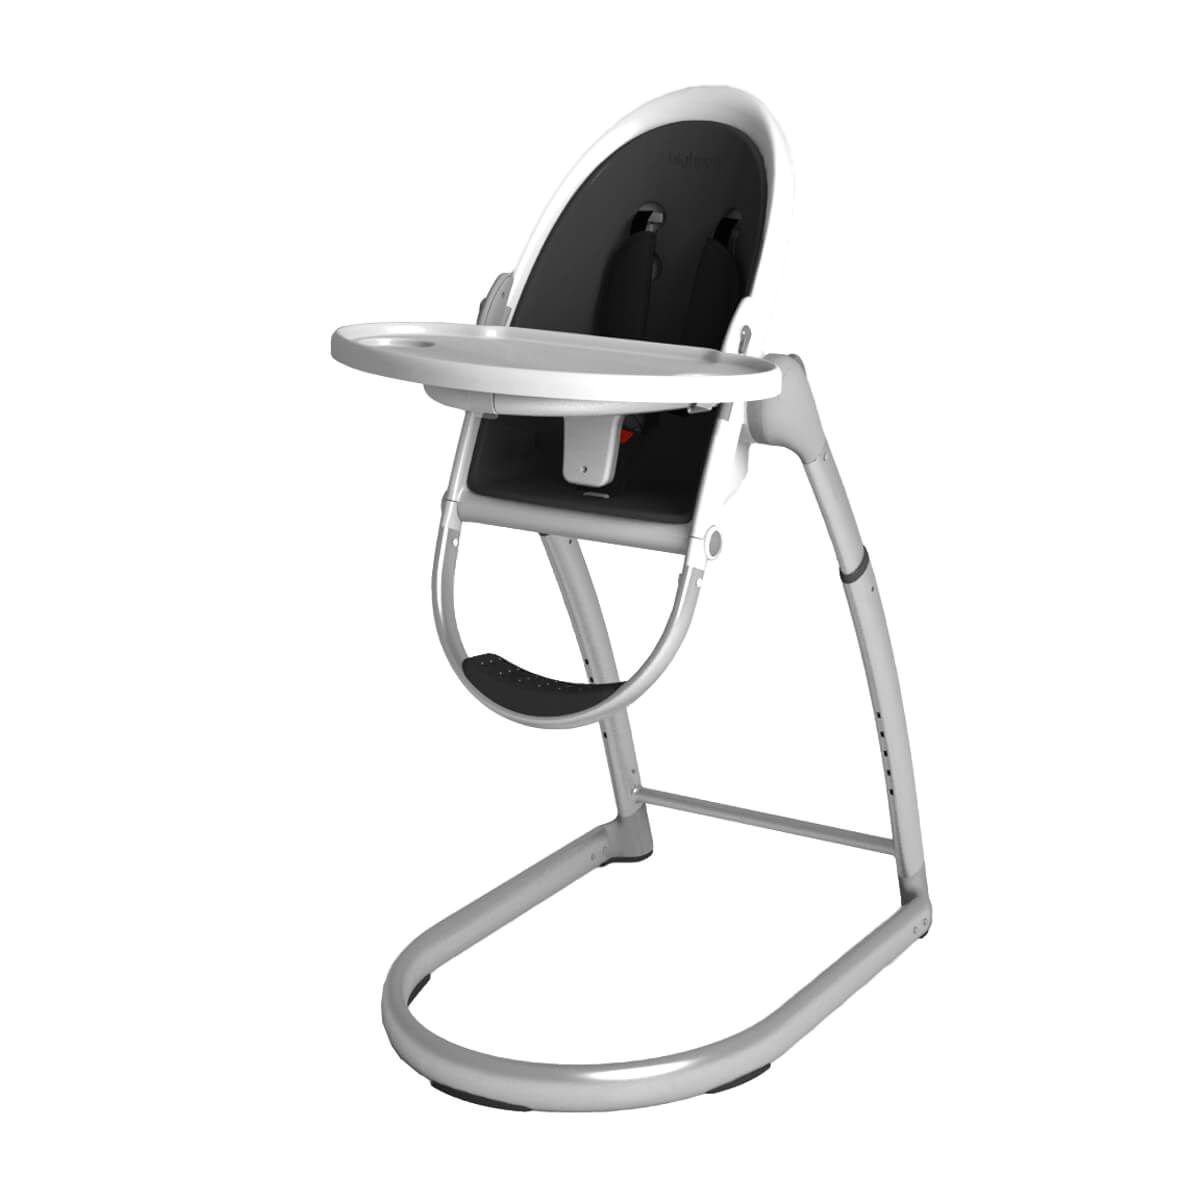 graco slim spaces high chair gaming reviews canada 55 bar stool baby modern home furniture check more at